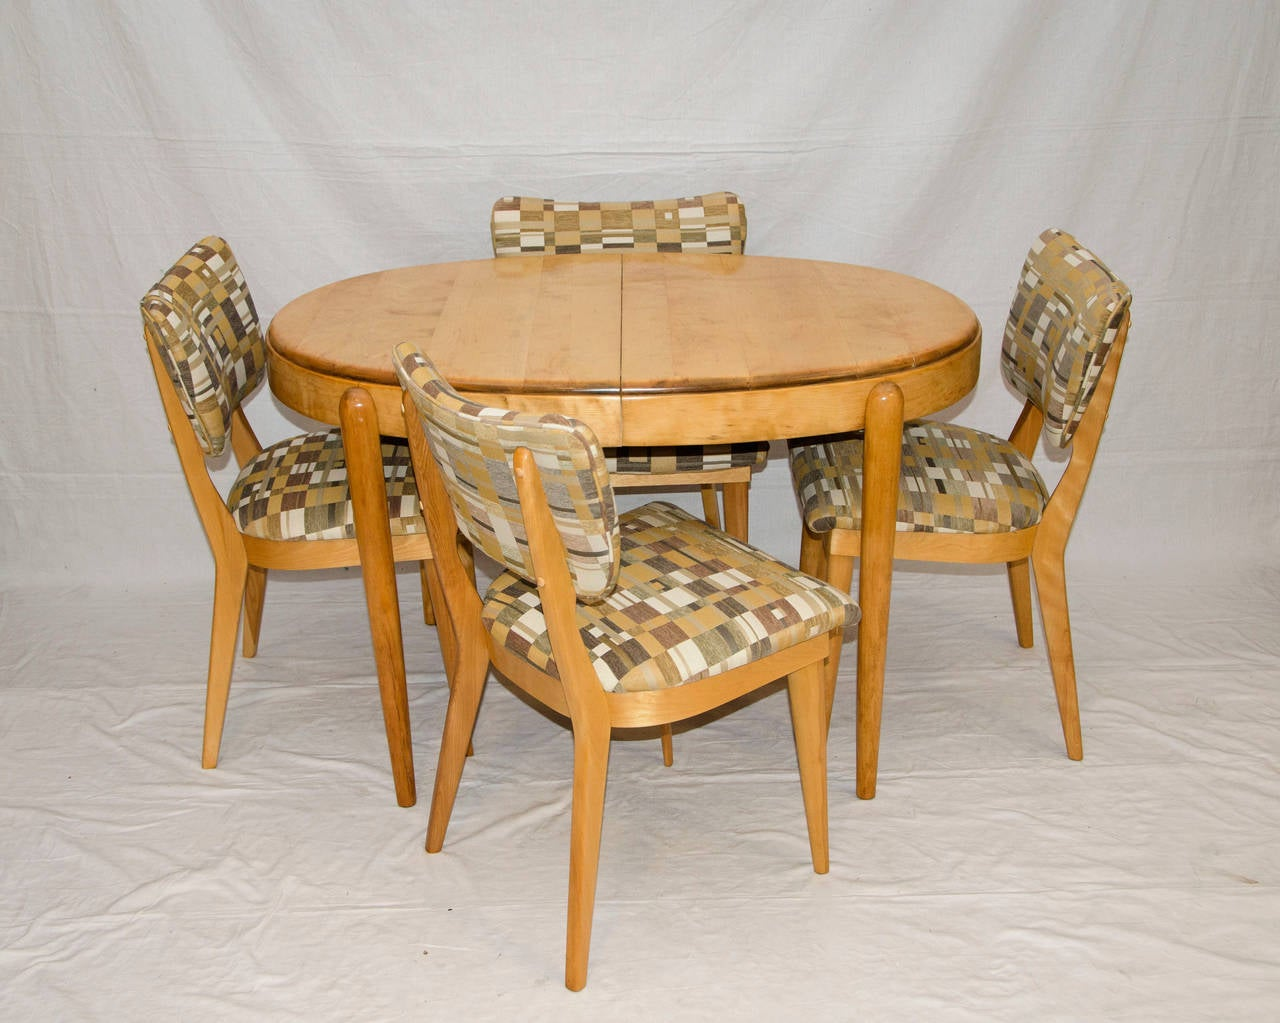 Four Mid Century Dining Chairs Heywood Wakefield at 1stdibs